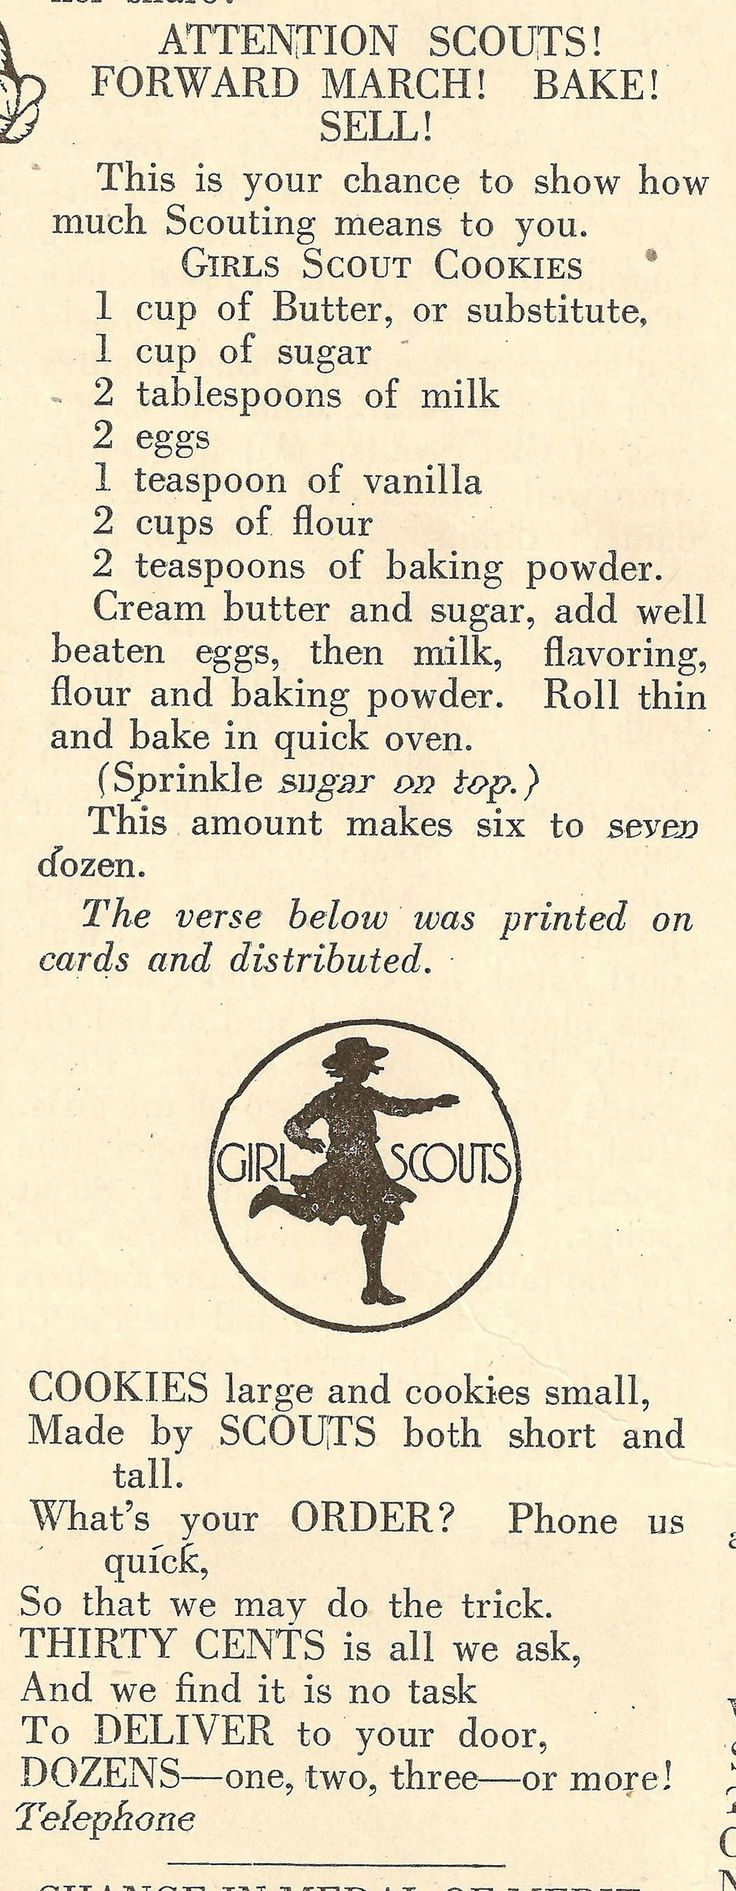 1922 Recipe for Girl Scout Cookies -- Juniors who are earning their Playing the Past badge might have fun making this recipe (with adult supervision), especially now that it's cookie season!